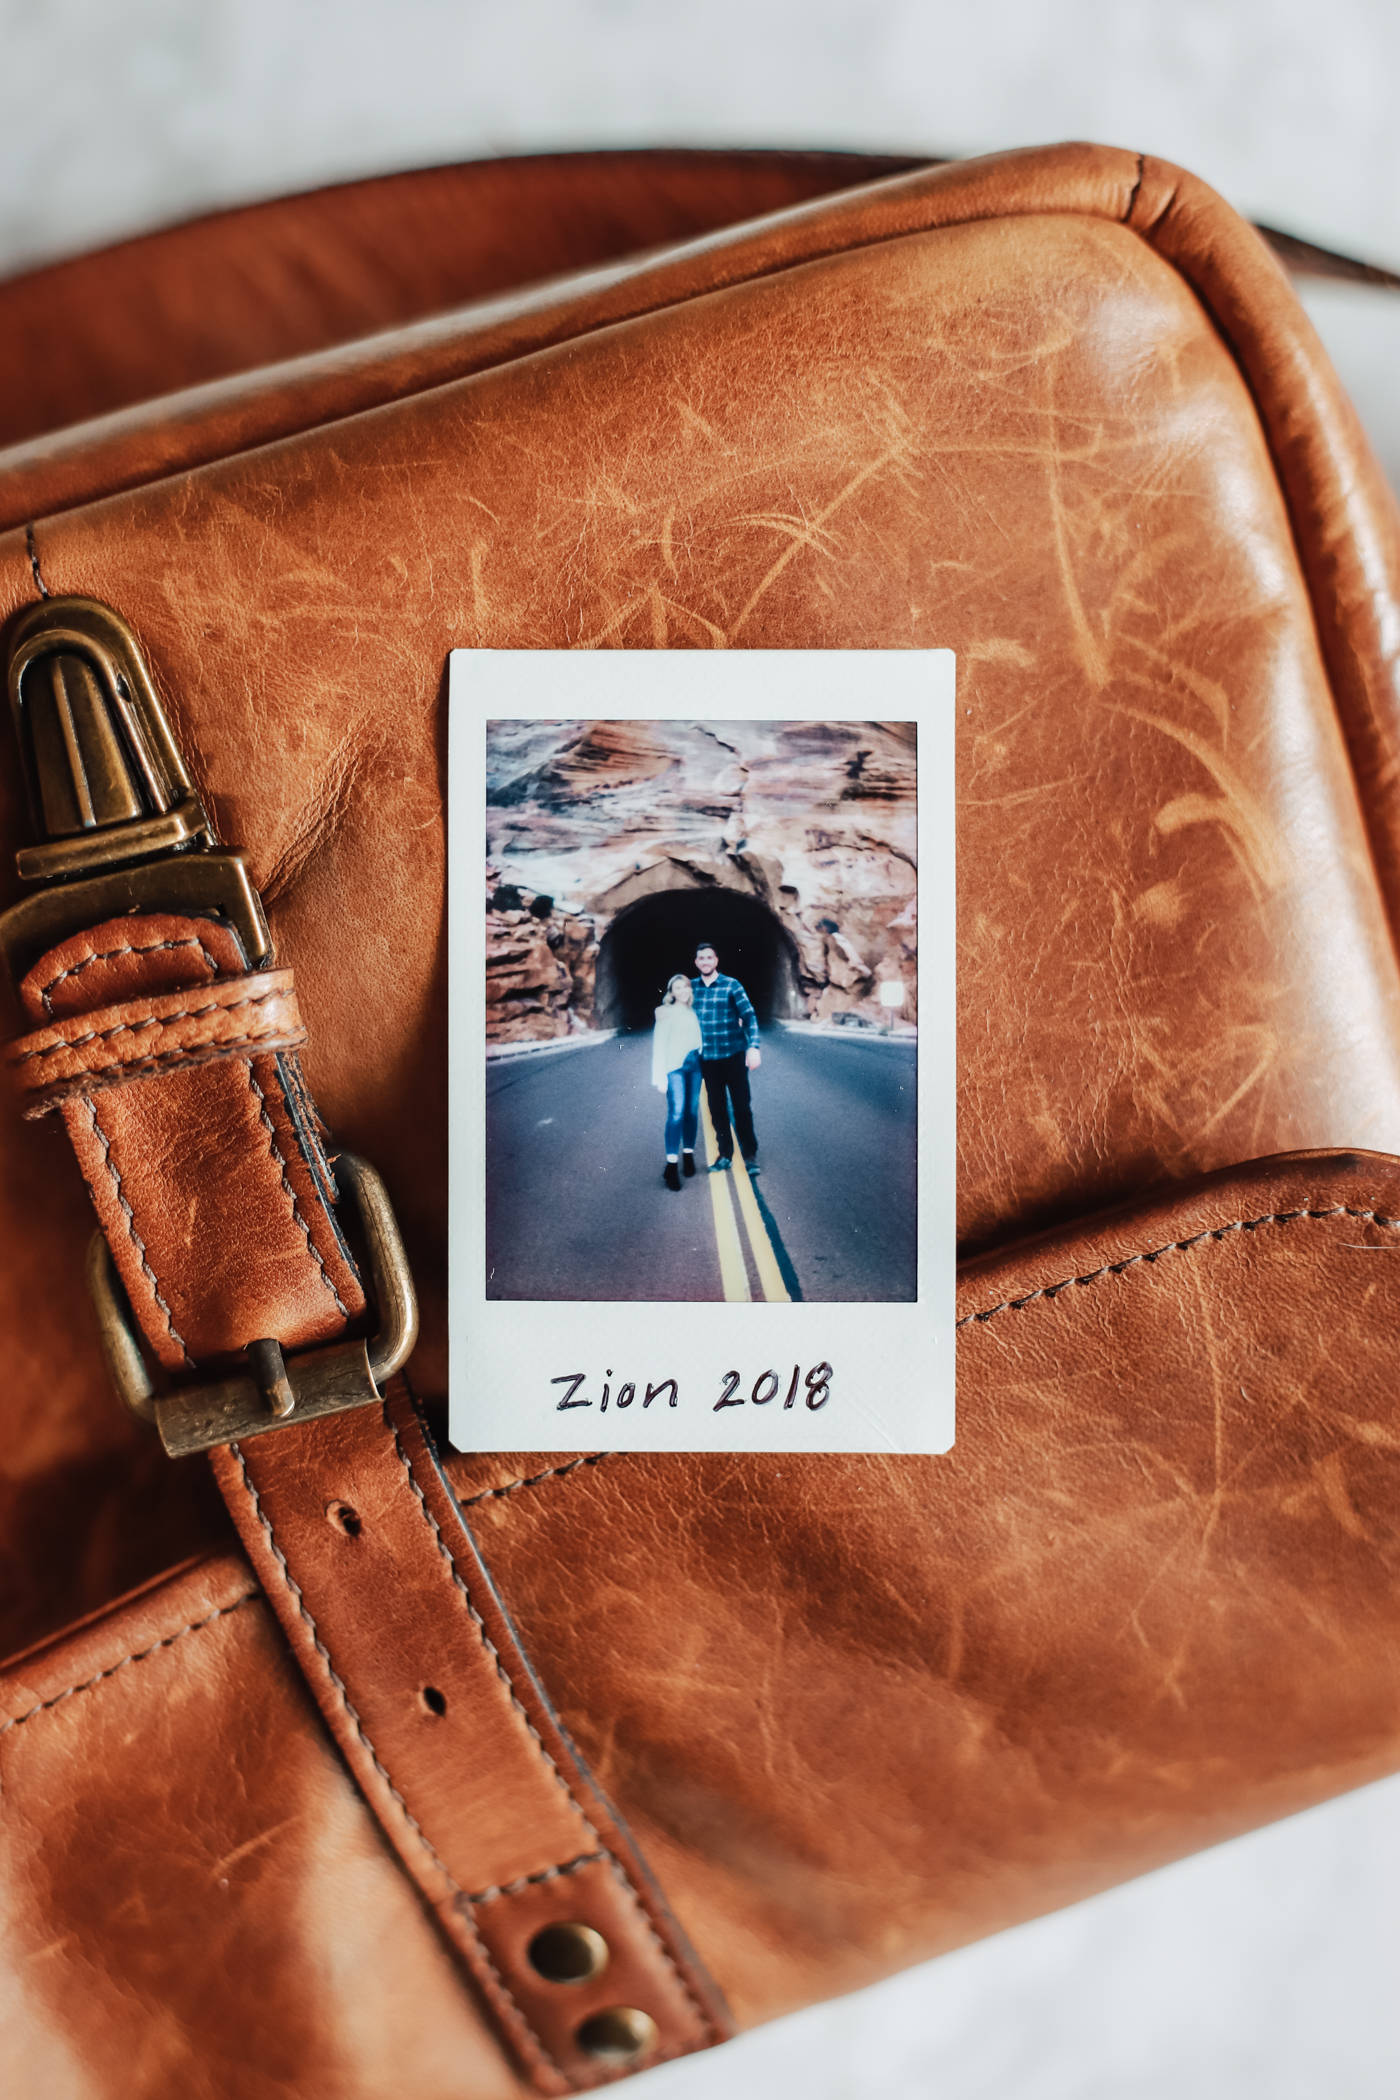 Polaroid from Zion National Park